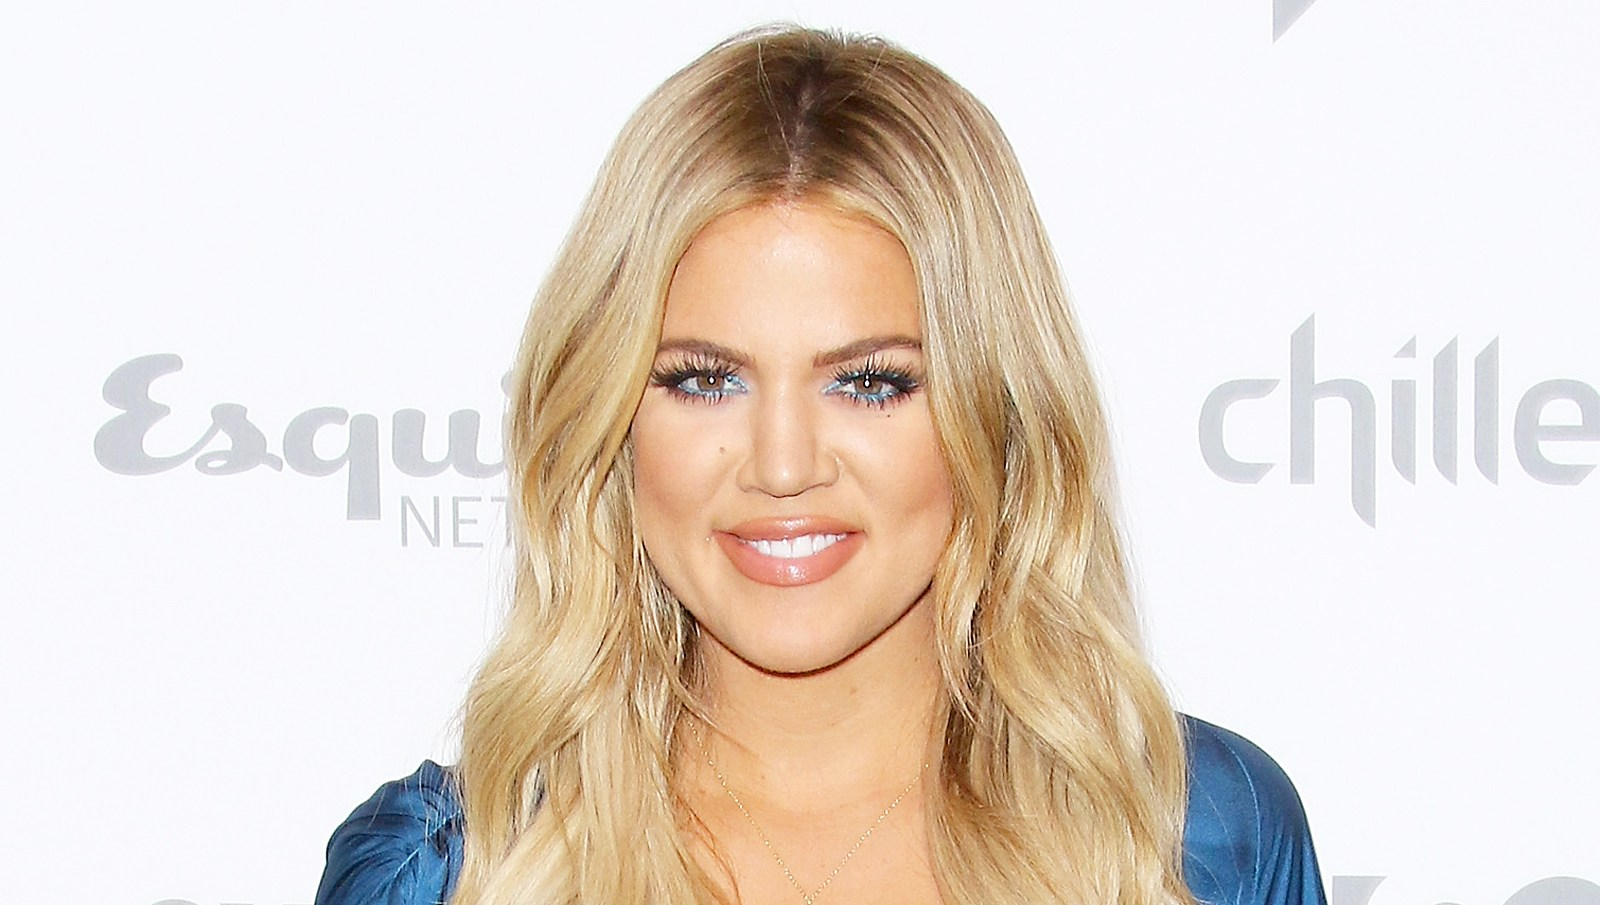 Khloe Kardashian attends the 2015 NBCUniversal Cable Entertainment Upfront at The Jacob K. Javits Convention Center in New York City.